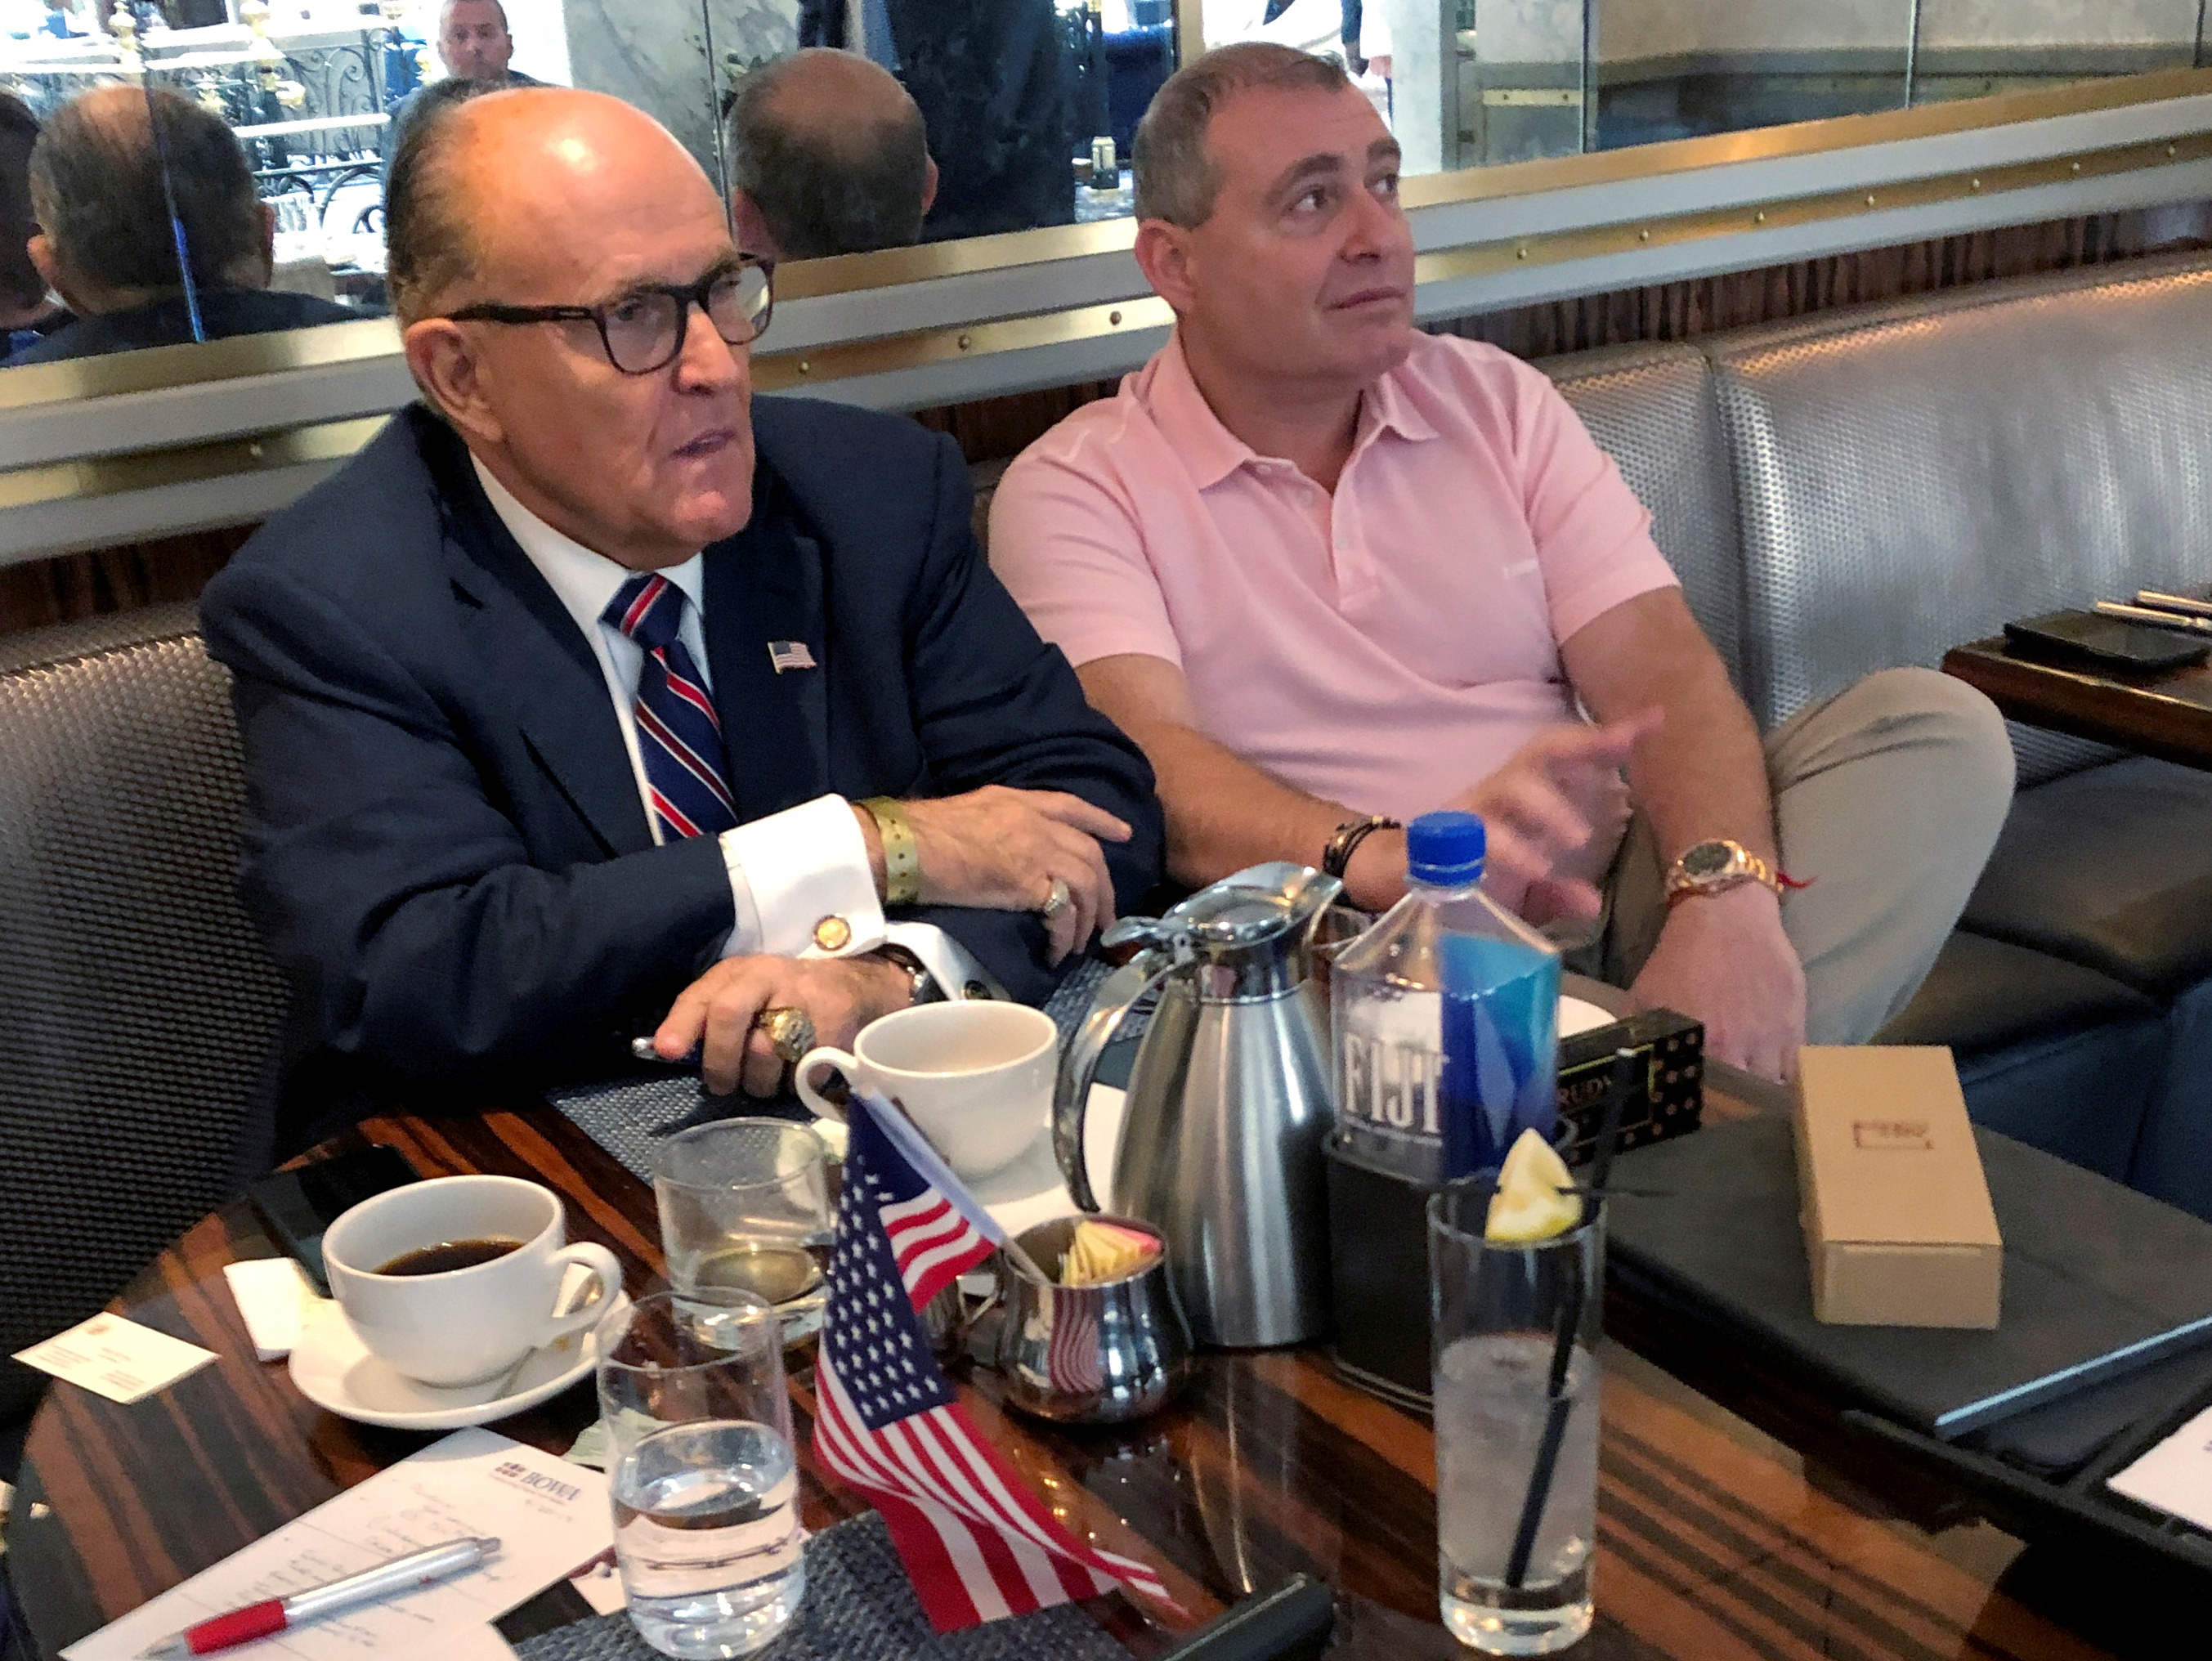 U.S. President Donald Trump's personal lawyer Rudy Giuliani has coffee with Ukrainian-American businessman Lev Parnas at the Trump International Hotel in Washington, U.S. September 20, 2019. (REUTERS/Aram Roston/File Photo)